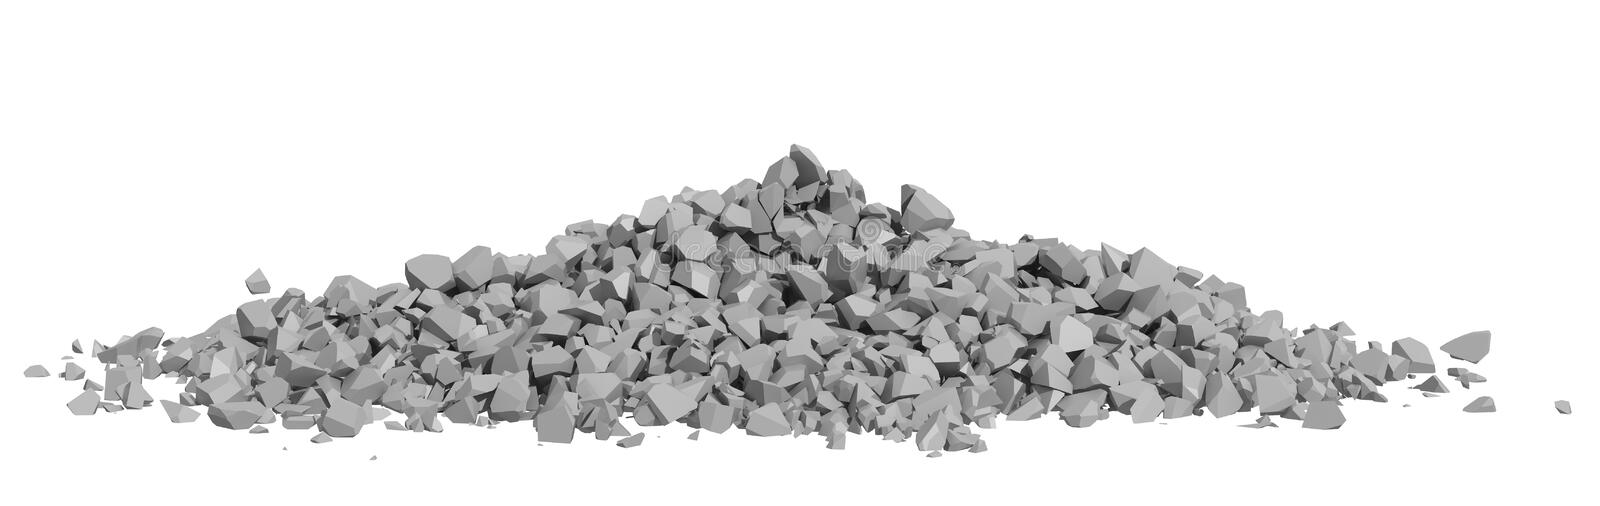 Rendered Image of Rock Rubble. Rock rubble and pebbles in a small pile isolated on a white background